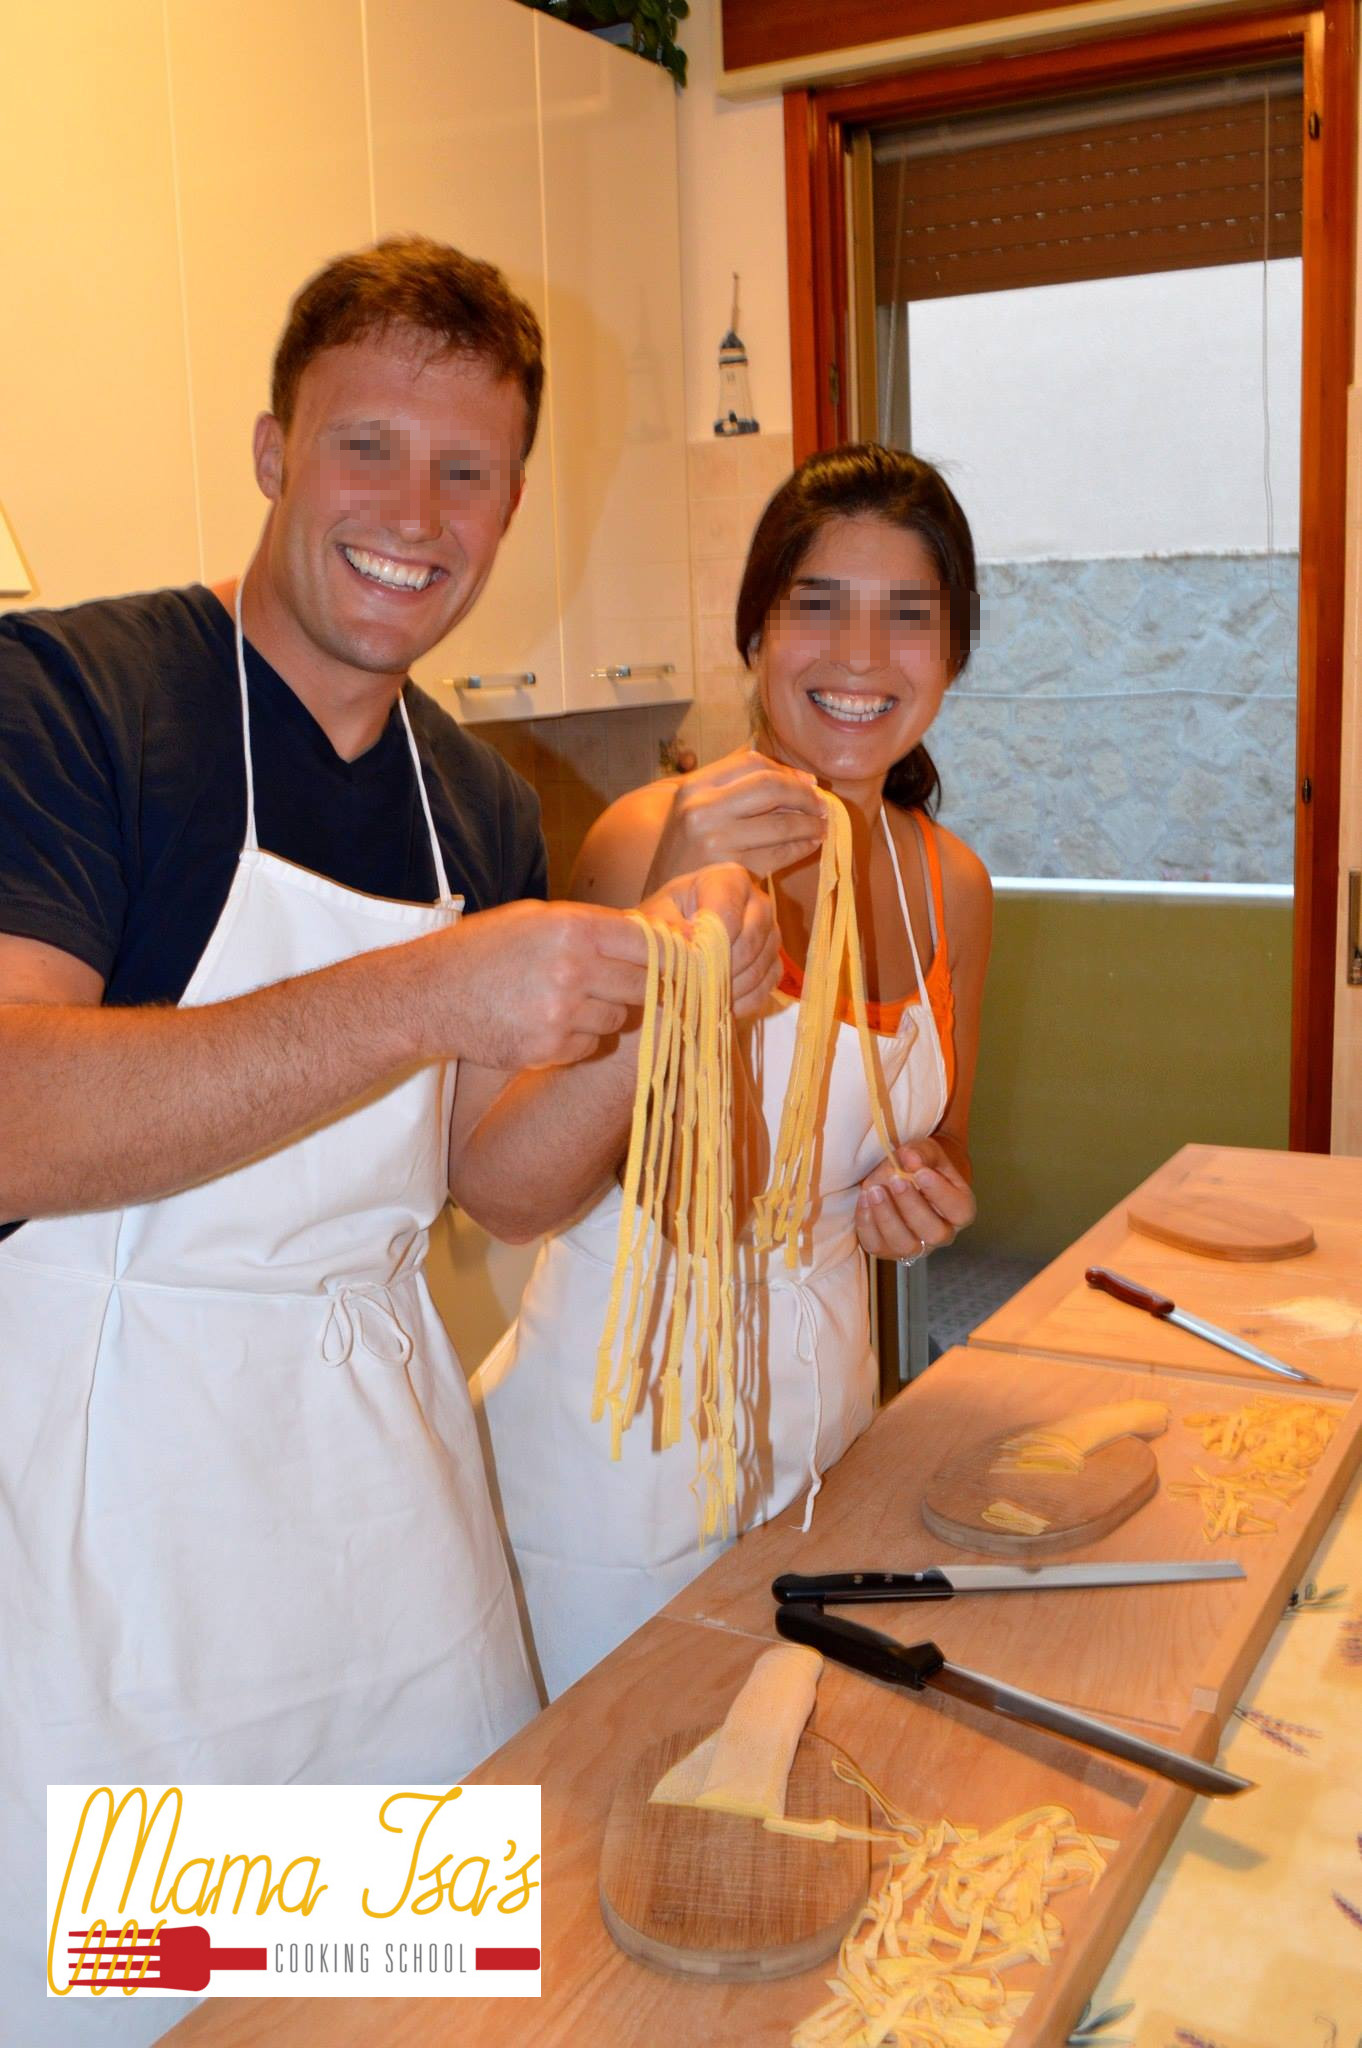 Week Cooking Course in Italy